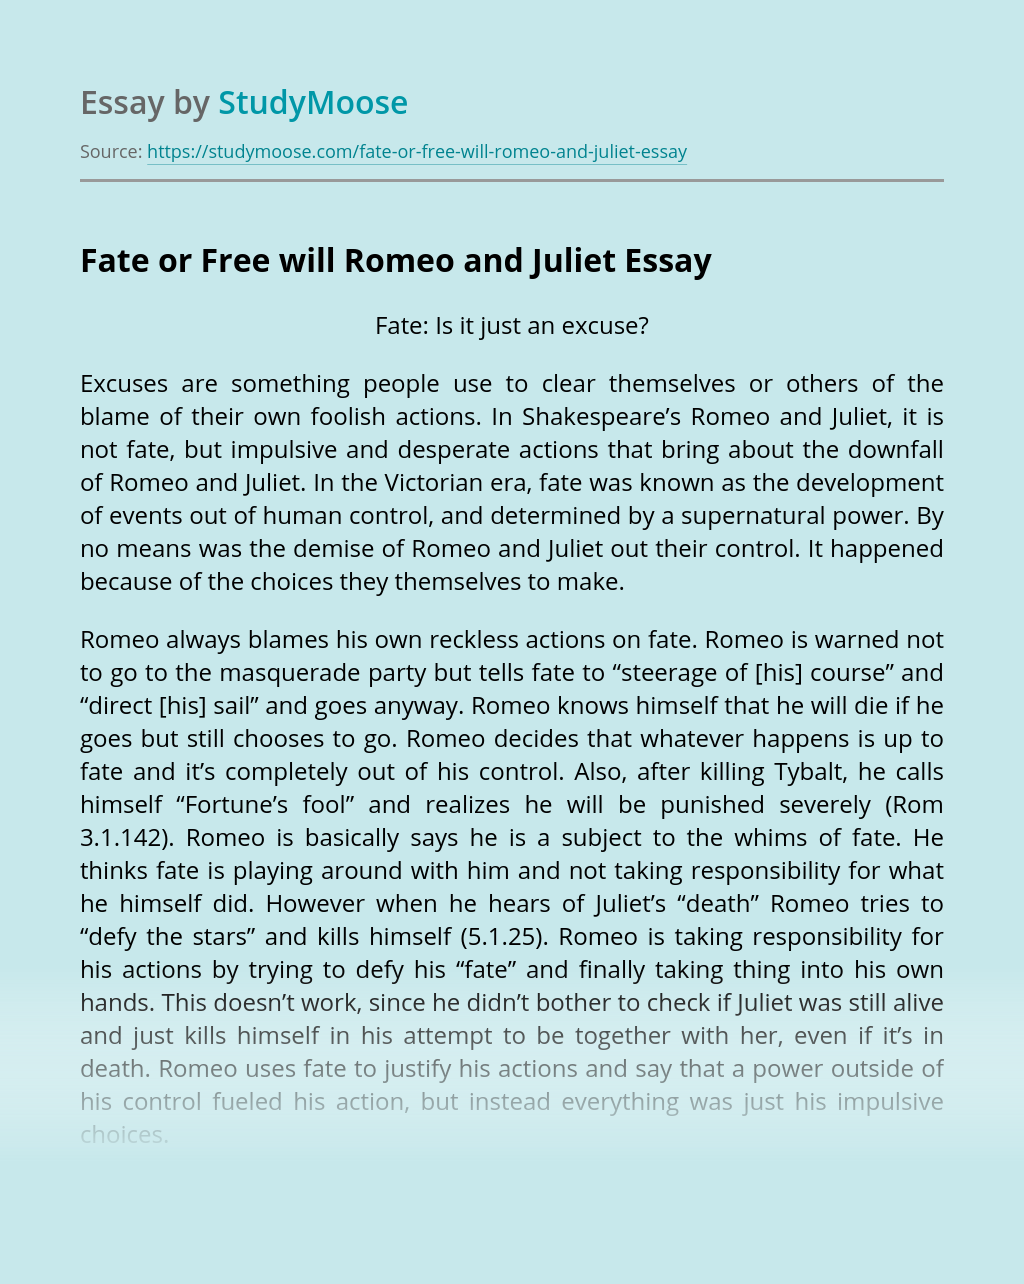 Fate or Free will Romeo and Juliet